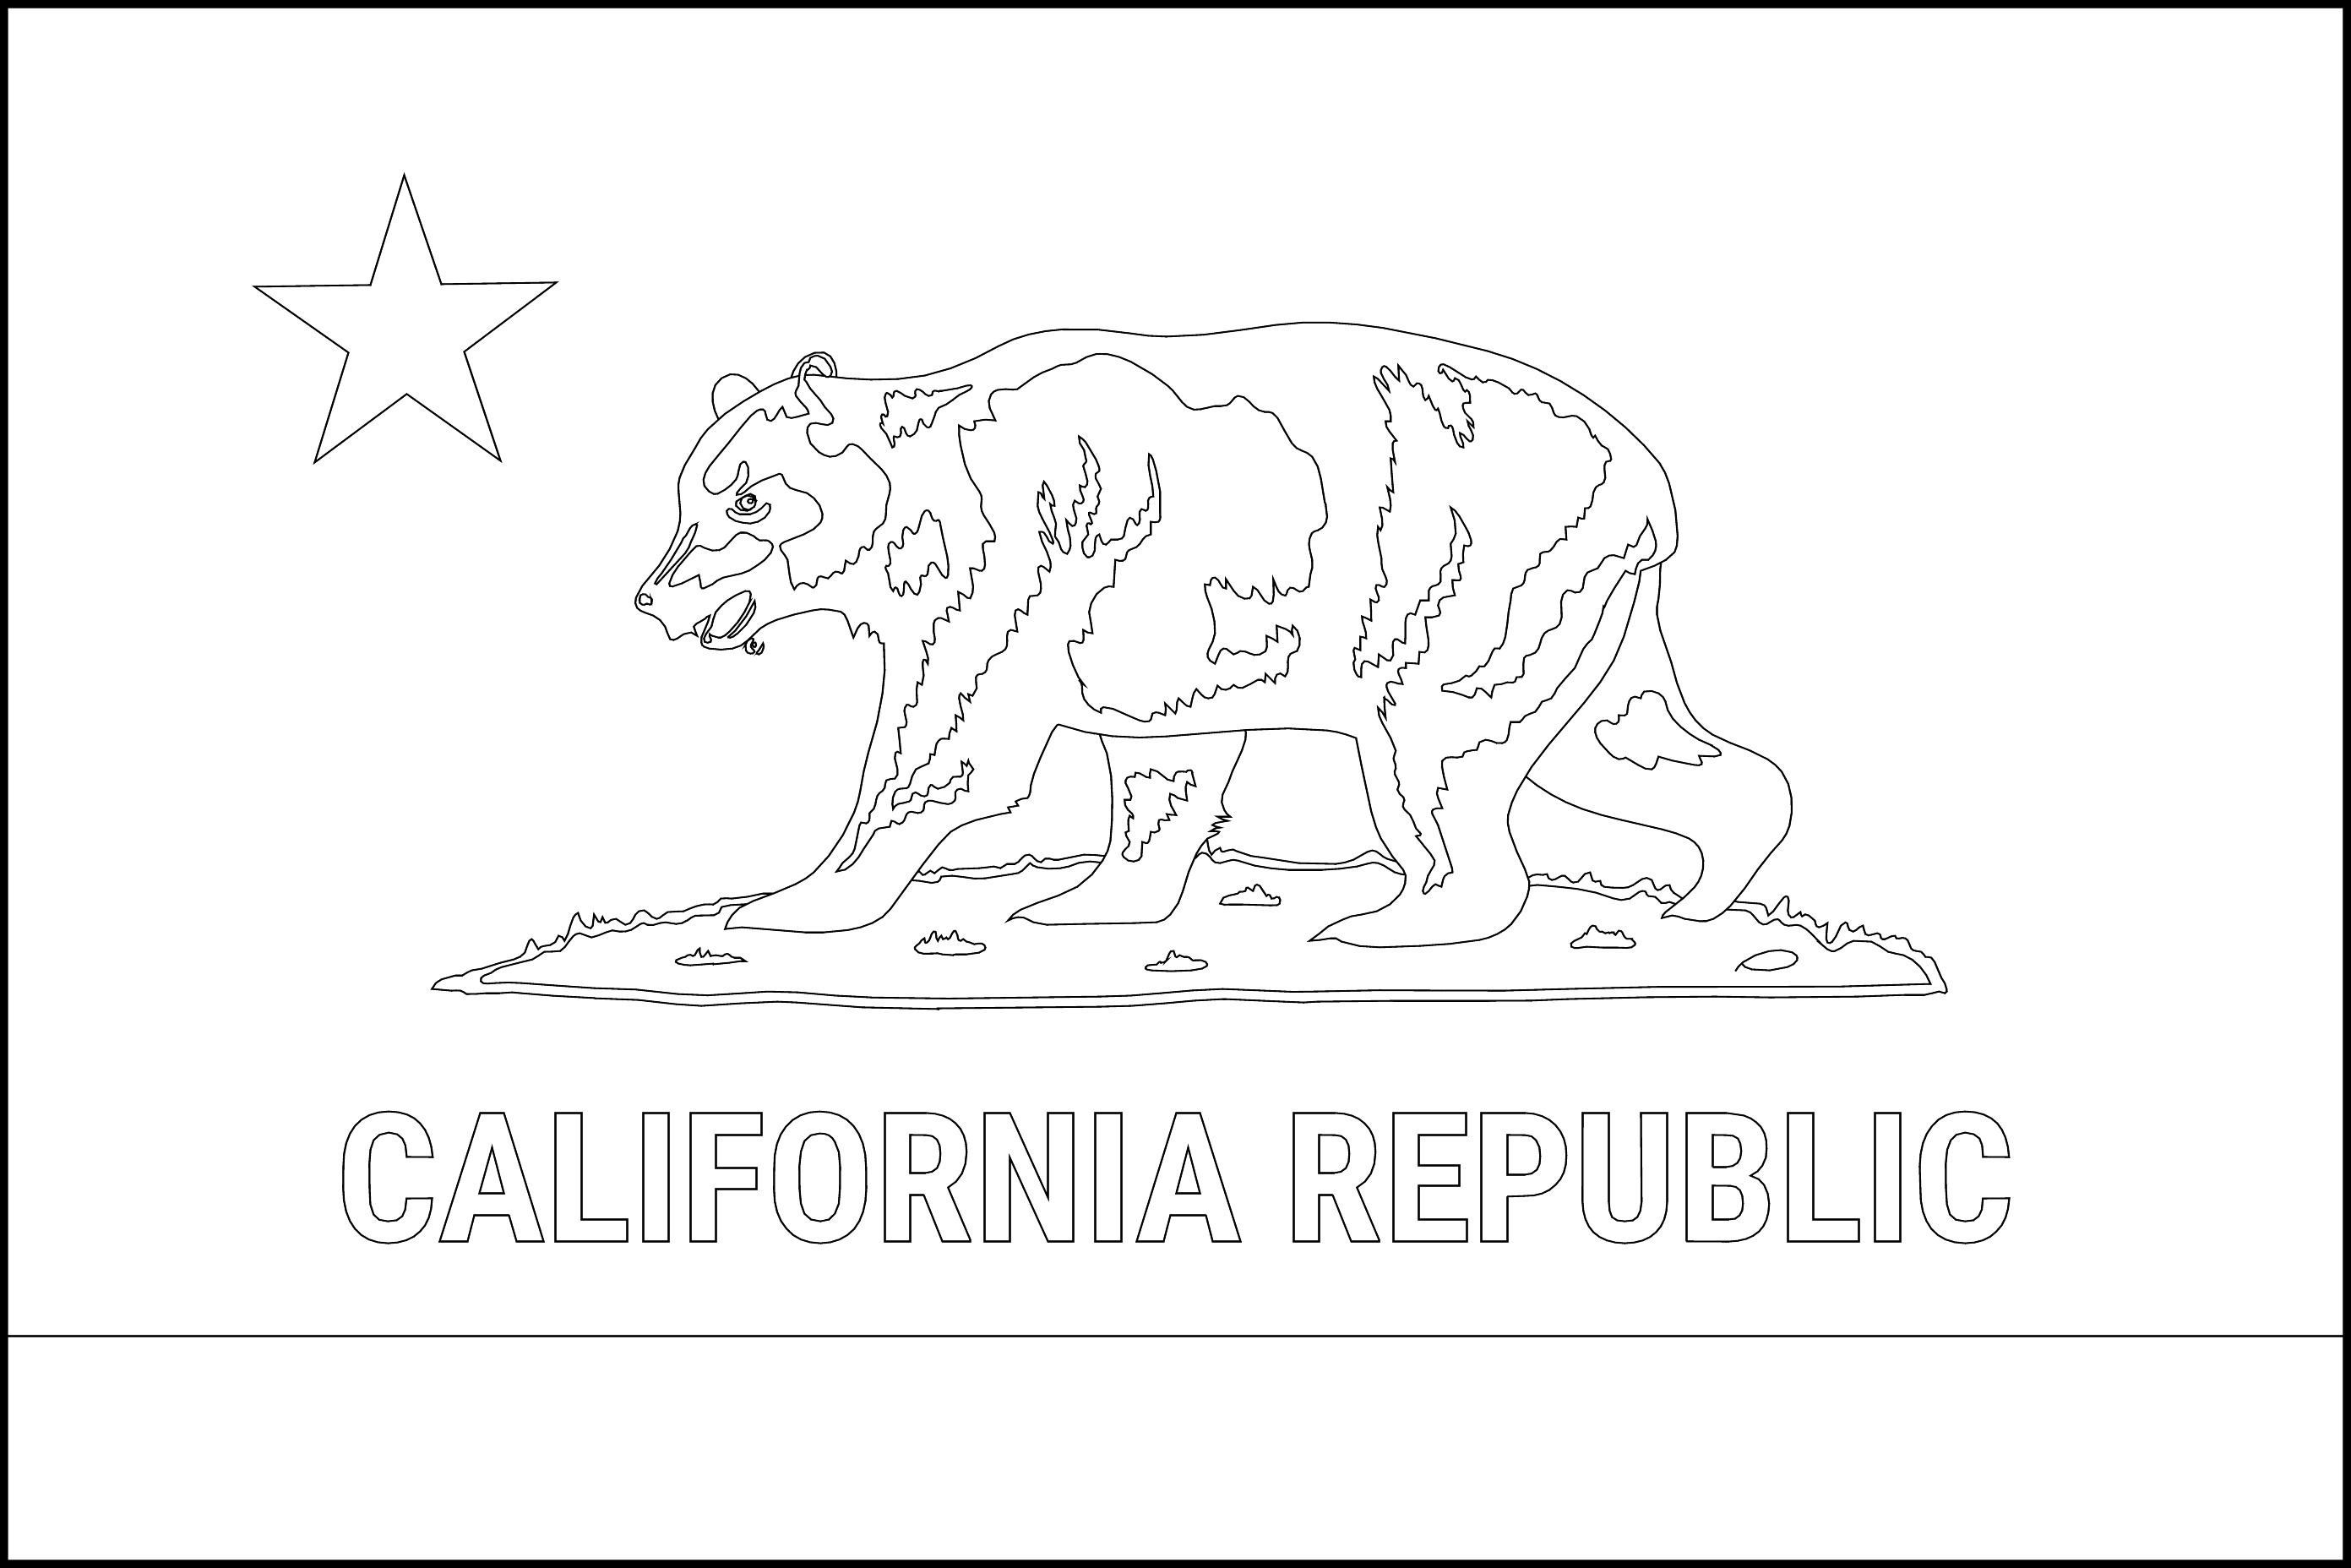 california state flag coloring page california state flag coloring page coloring page flag california state